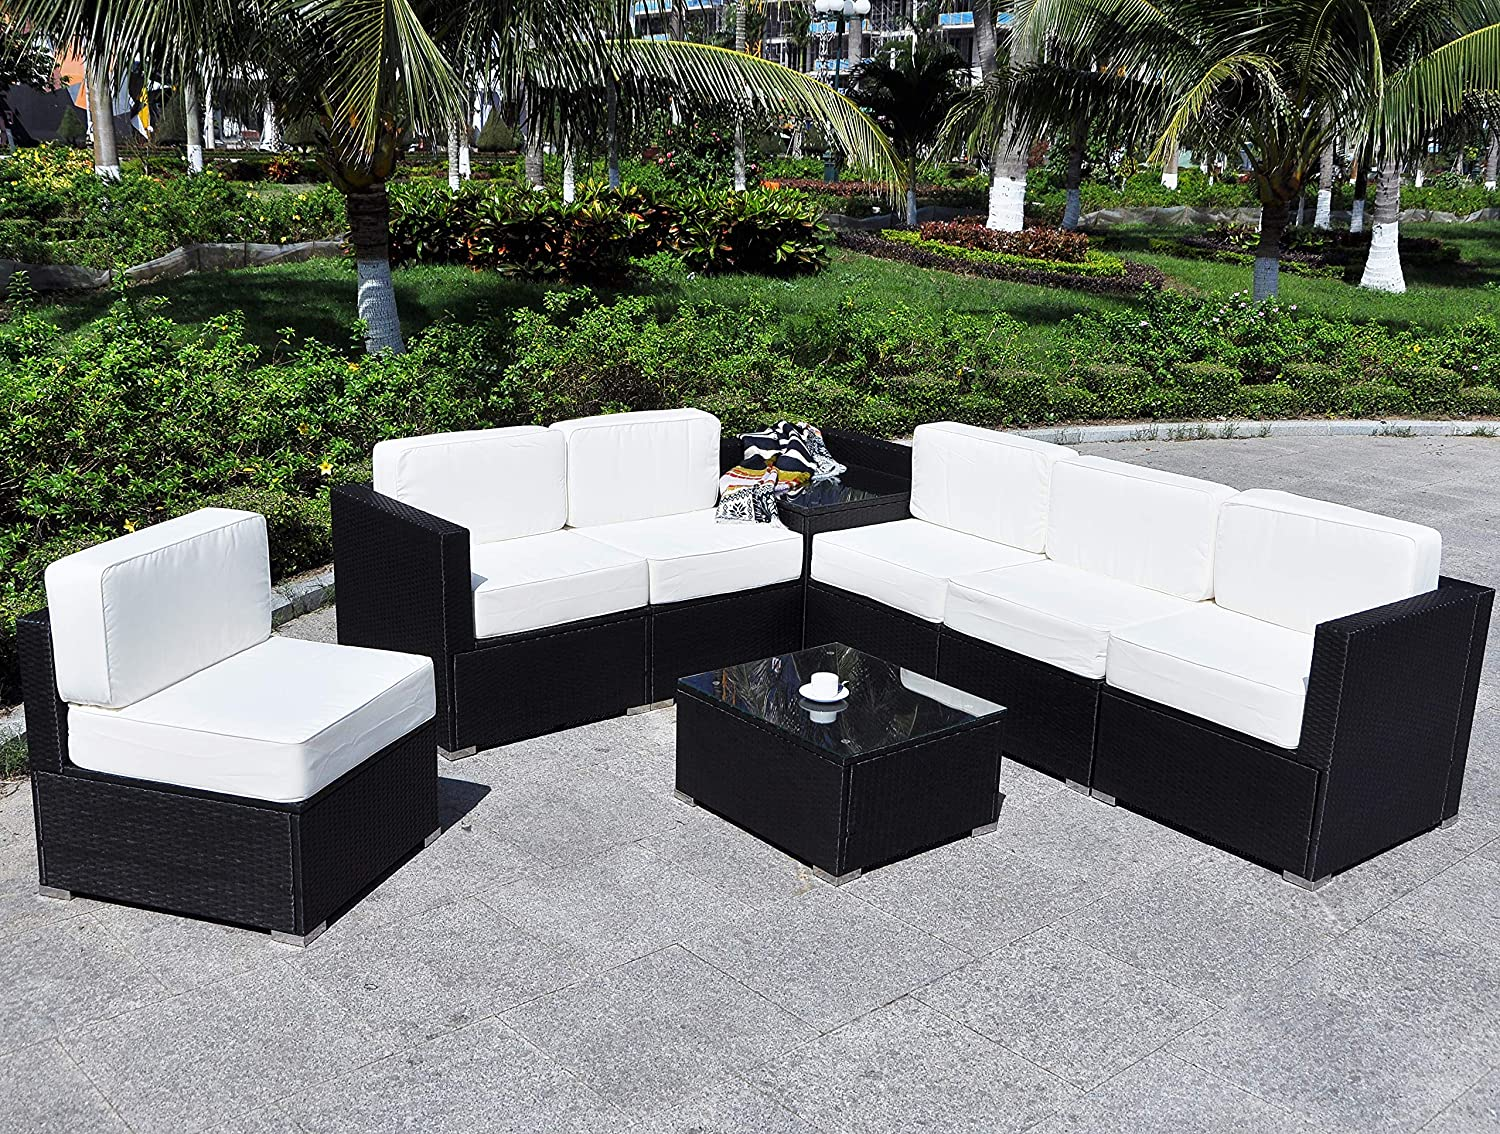 Mcombo Patio Furniture Sectional Set Outdoor Wicker Sofa Lawn Rattan Conversation Chair with 6 Inch Cushions and Tea Table Cream White 6082-8PC